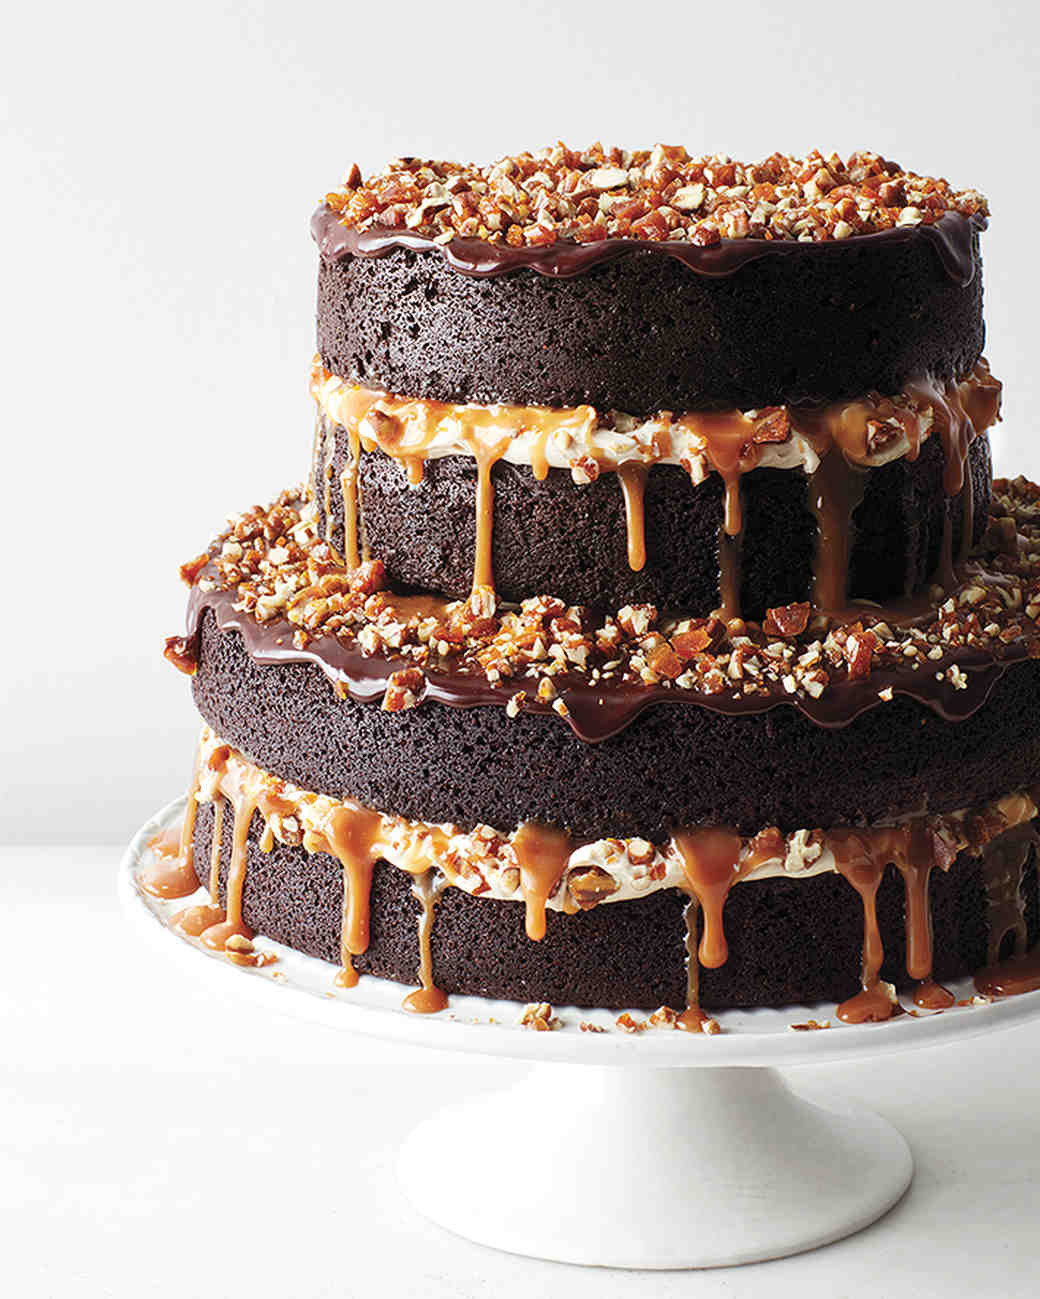 Chocolate Wedding Cakes Pictures  29 Chocolate Wedding Cake Ideas That Will Blow Your Guests